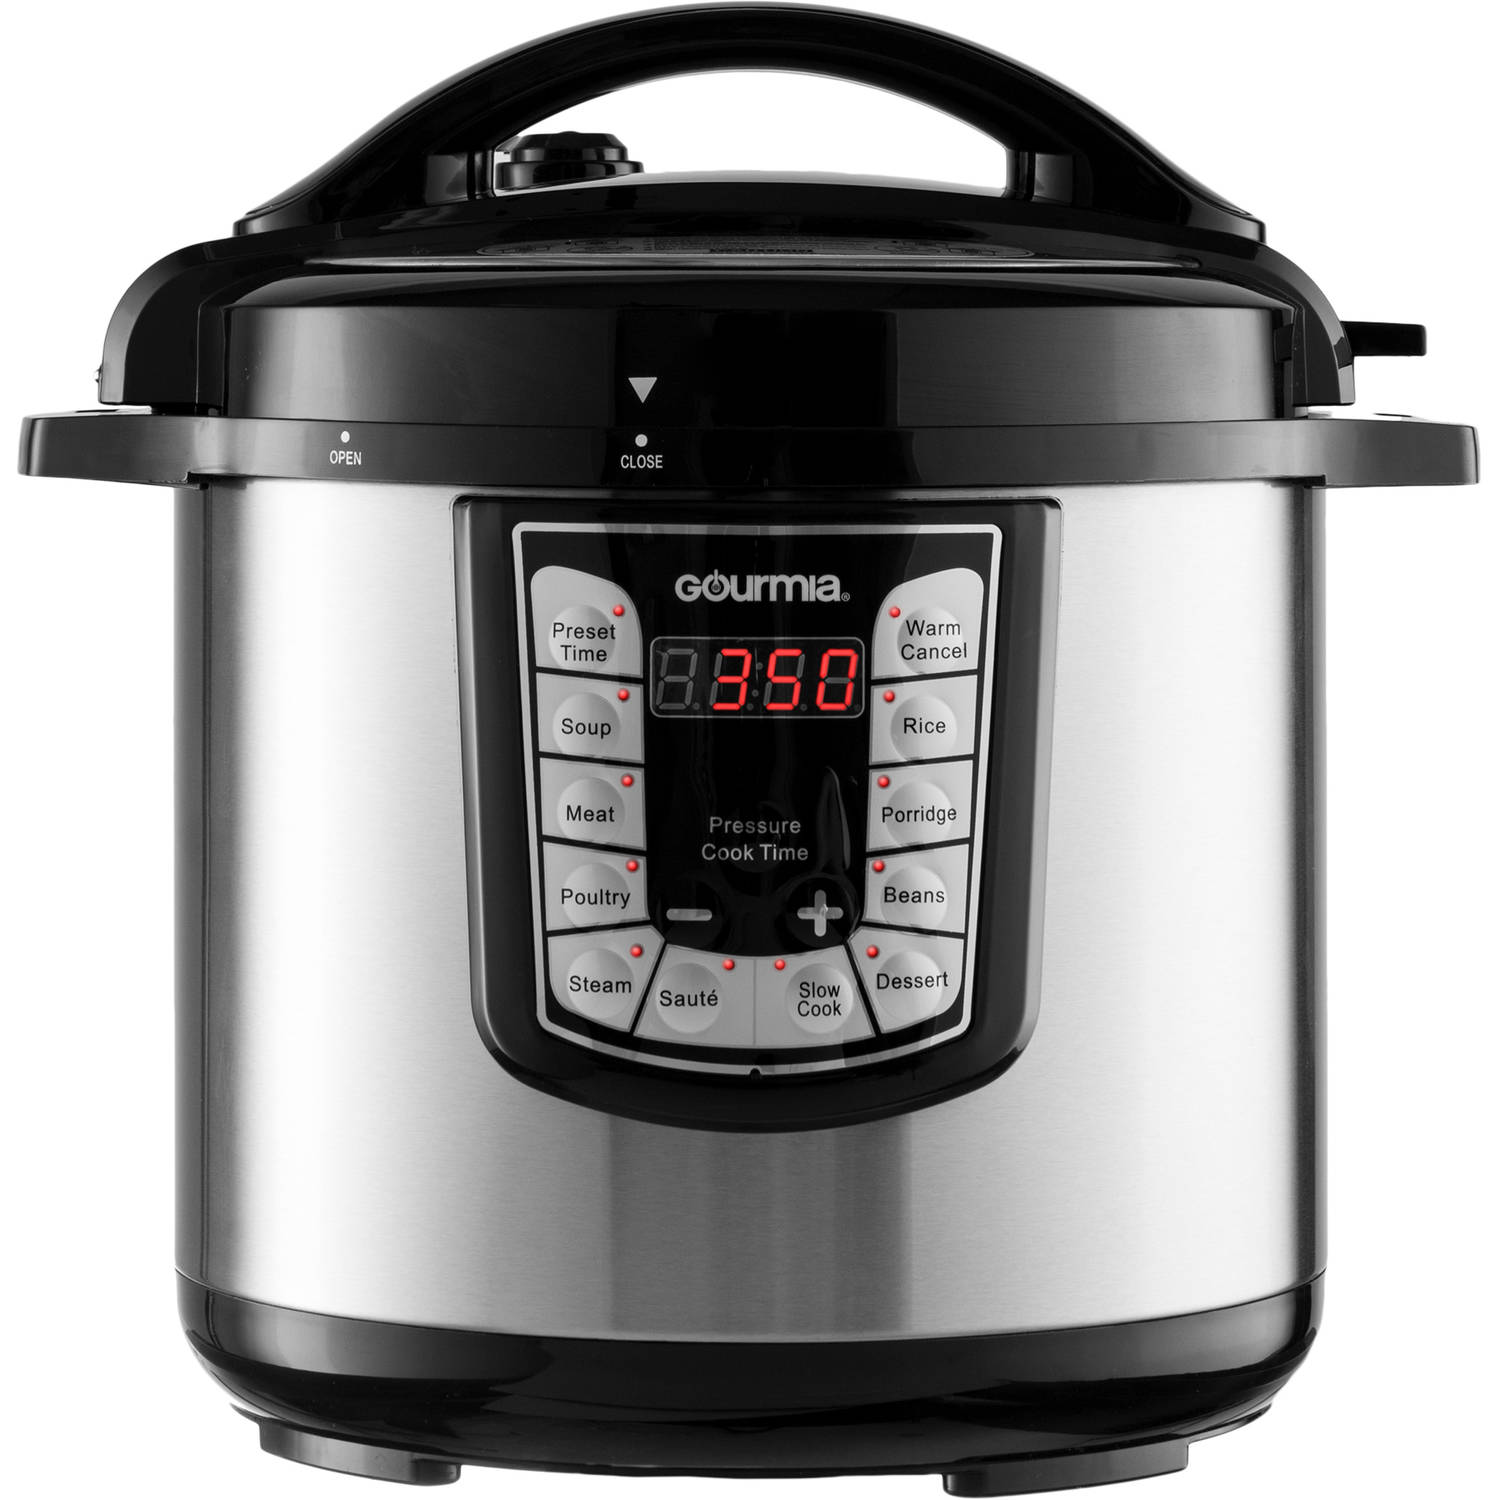 Gourmia GPC800 Stainless Steel 8-Quart Smart Pot Electric Digital Multifunction Pressure Cooker with 13 Programmable Cooking Modes